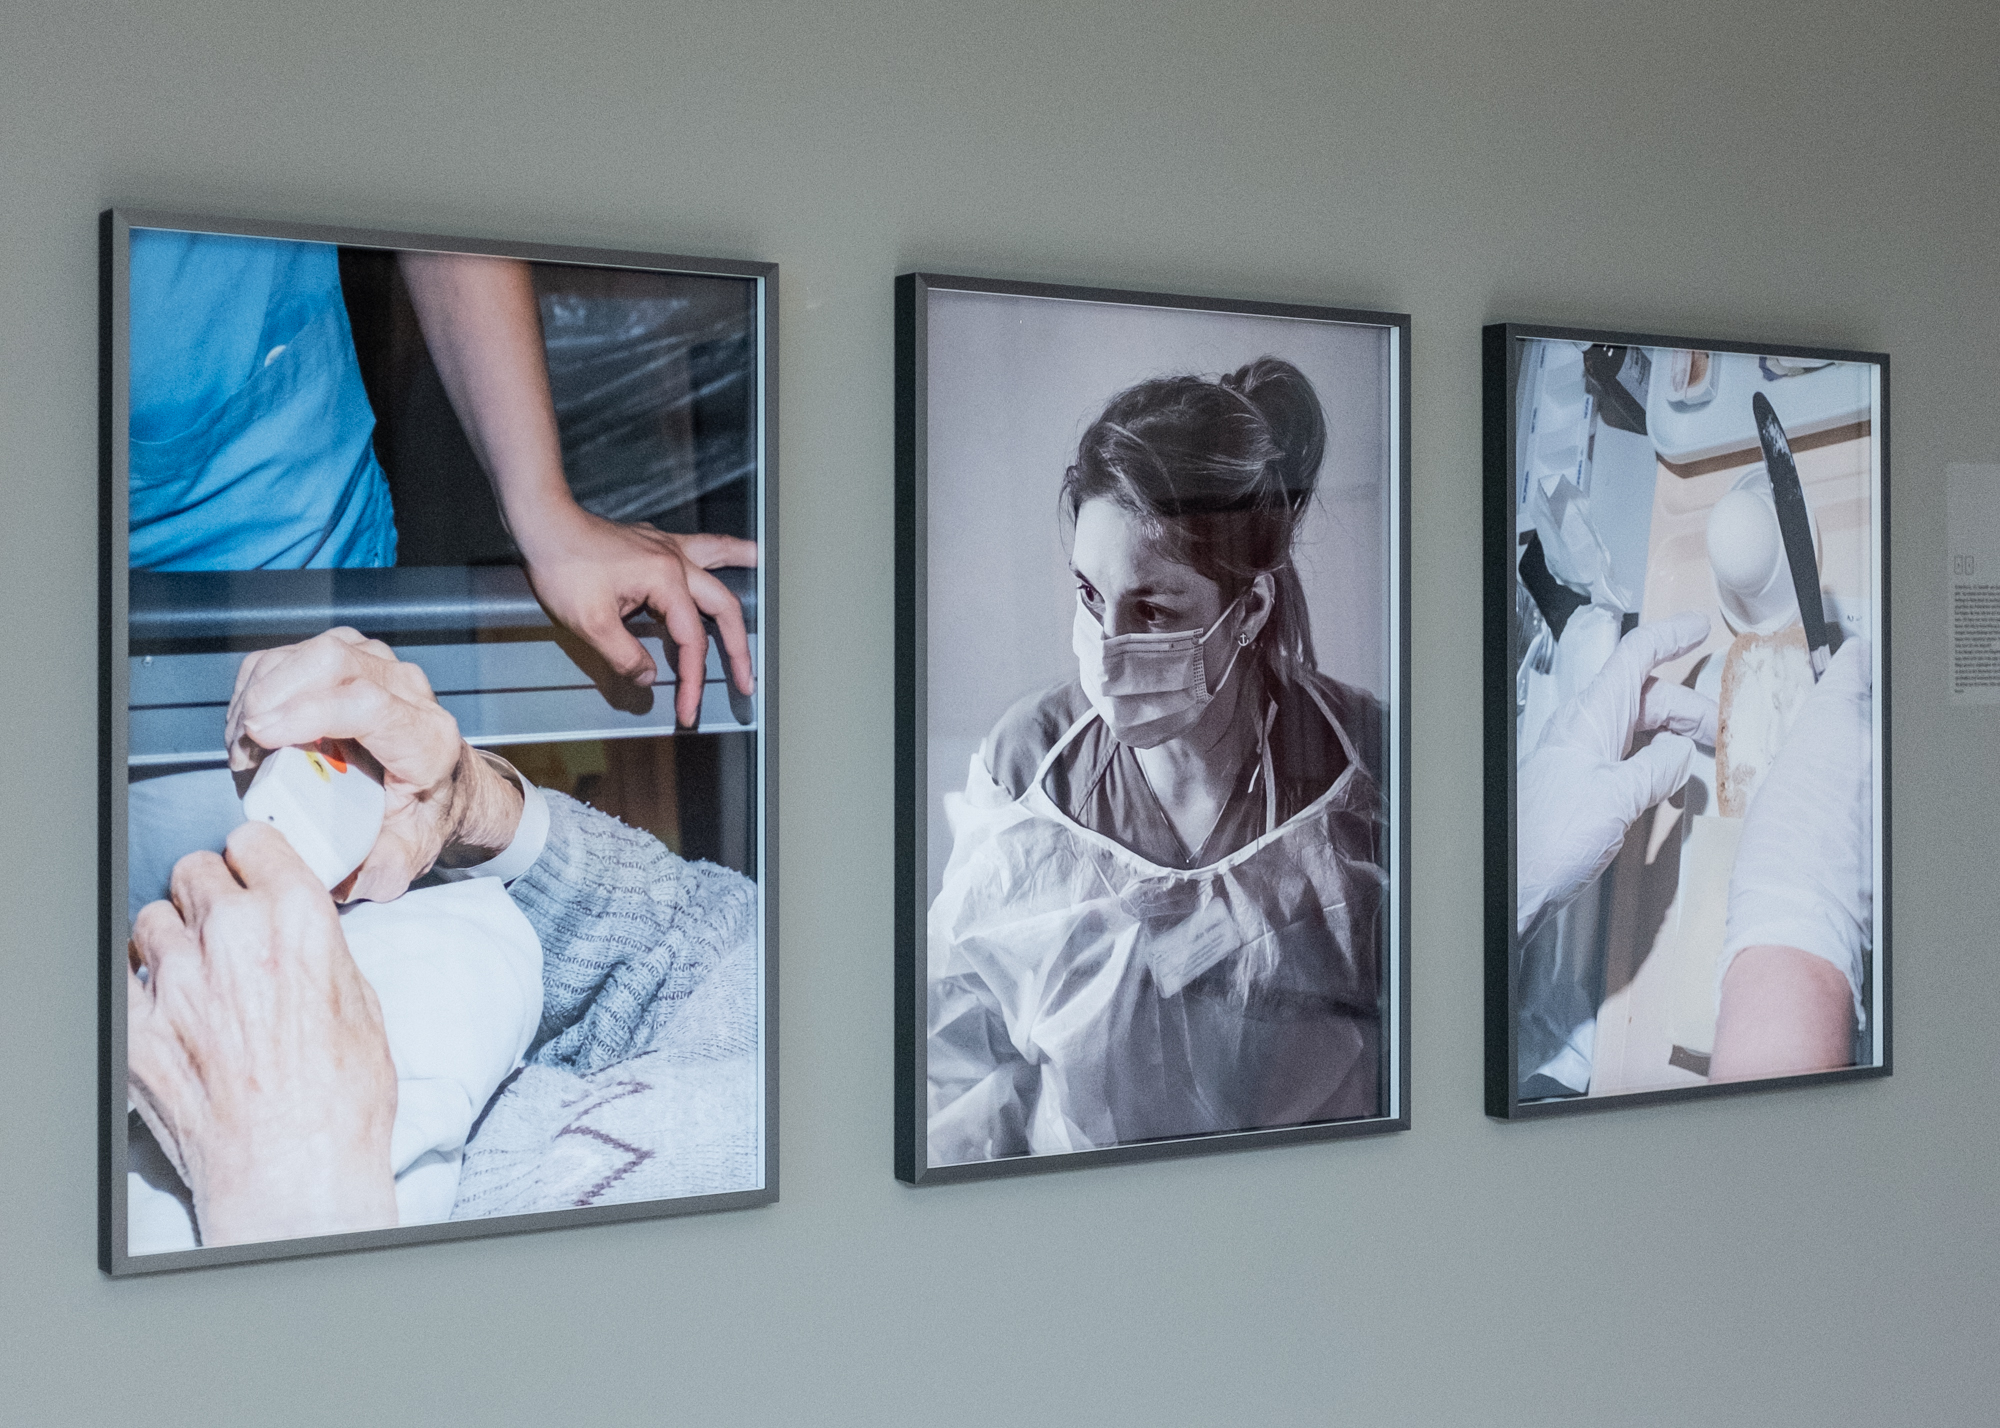 """Installation view of """"Nicht muede werden"""" as a part of """"Selected Works: Lumix Festival for young photojournalism"""" at Freiraum für Fotografie Galerie in Berlin in August 2020."""